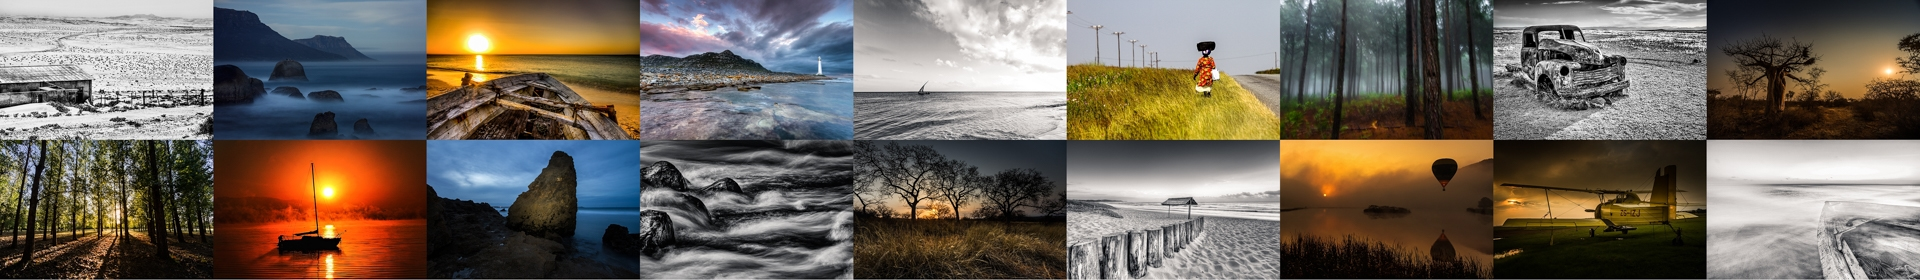 Travel and Landscape Photography Course